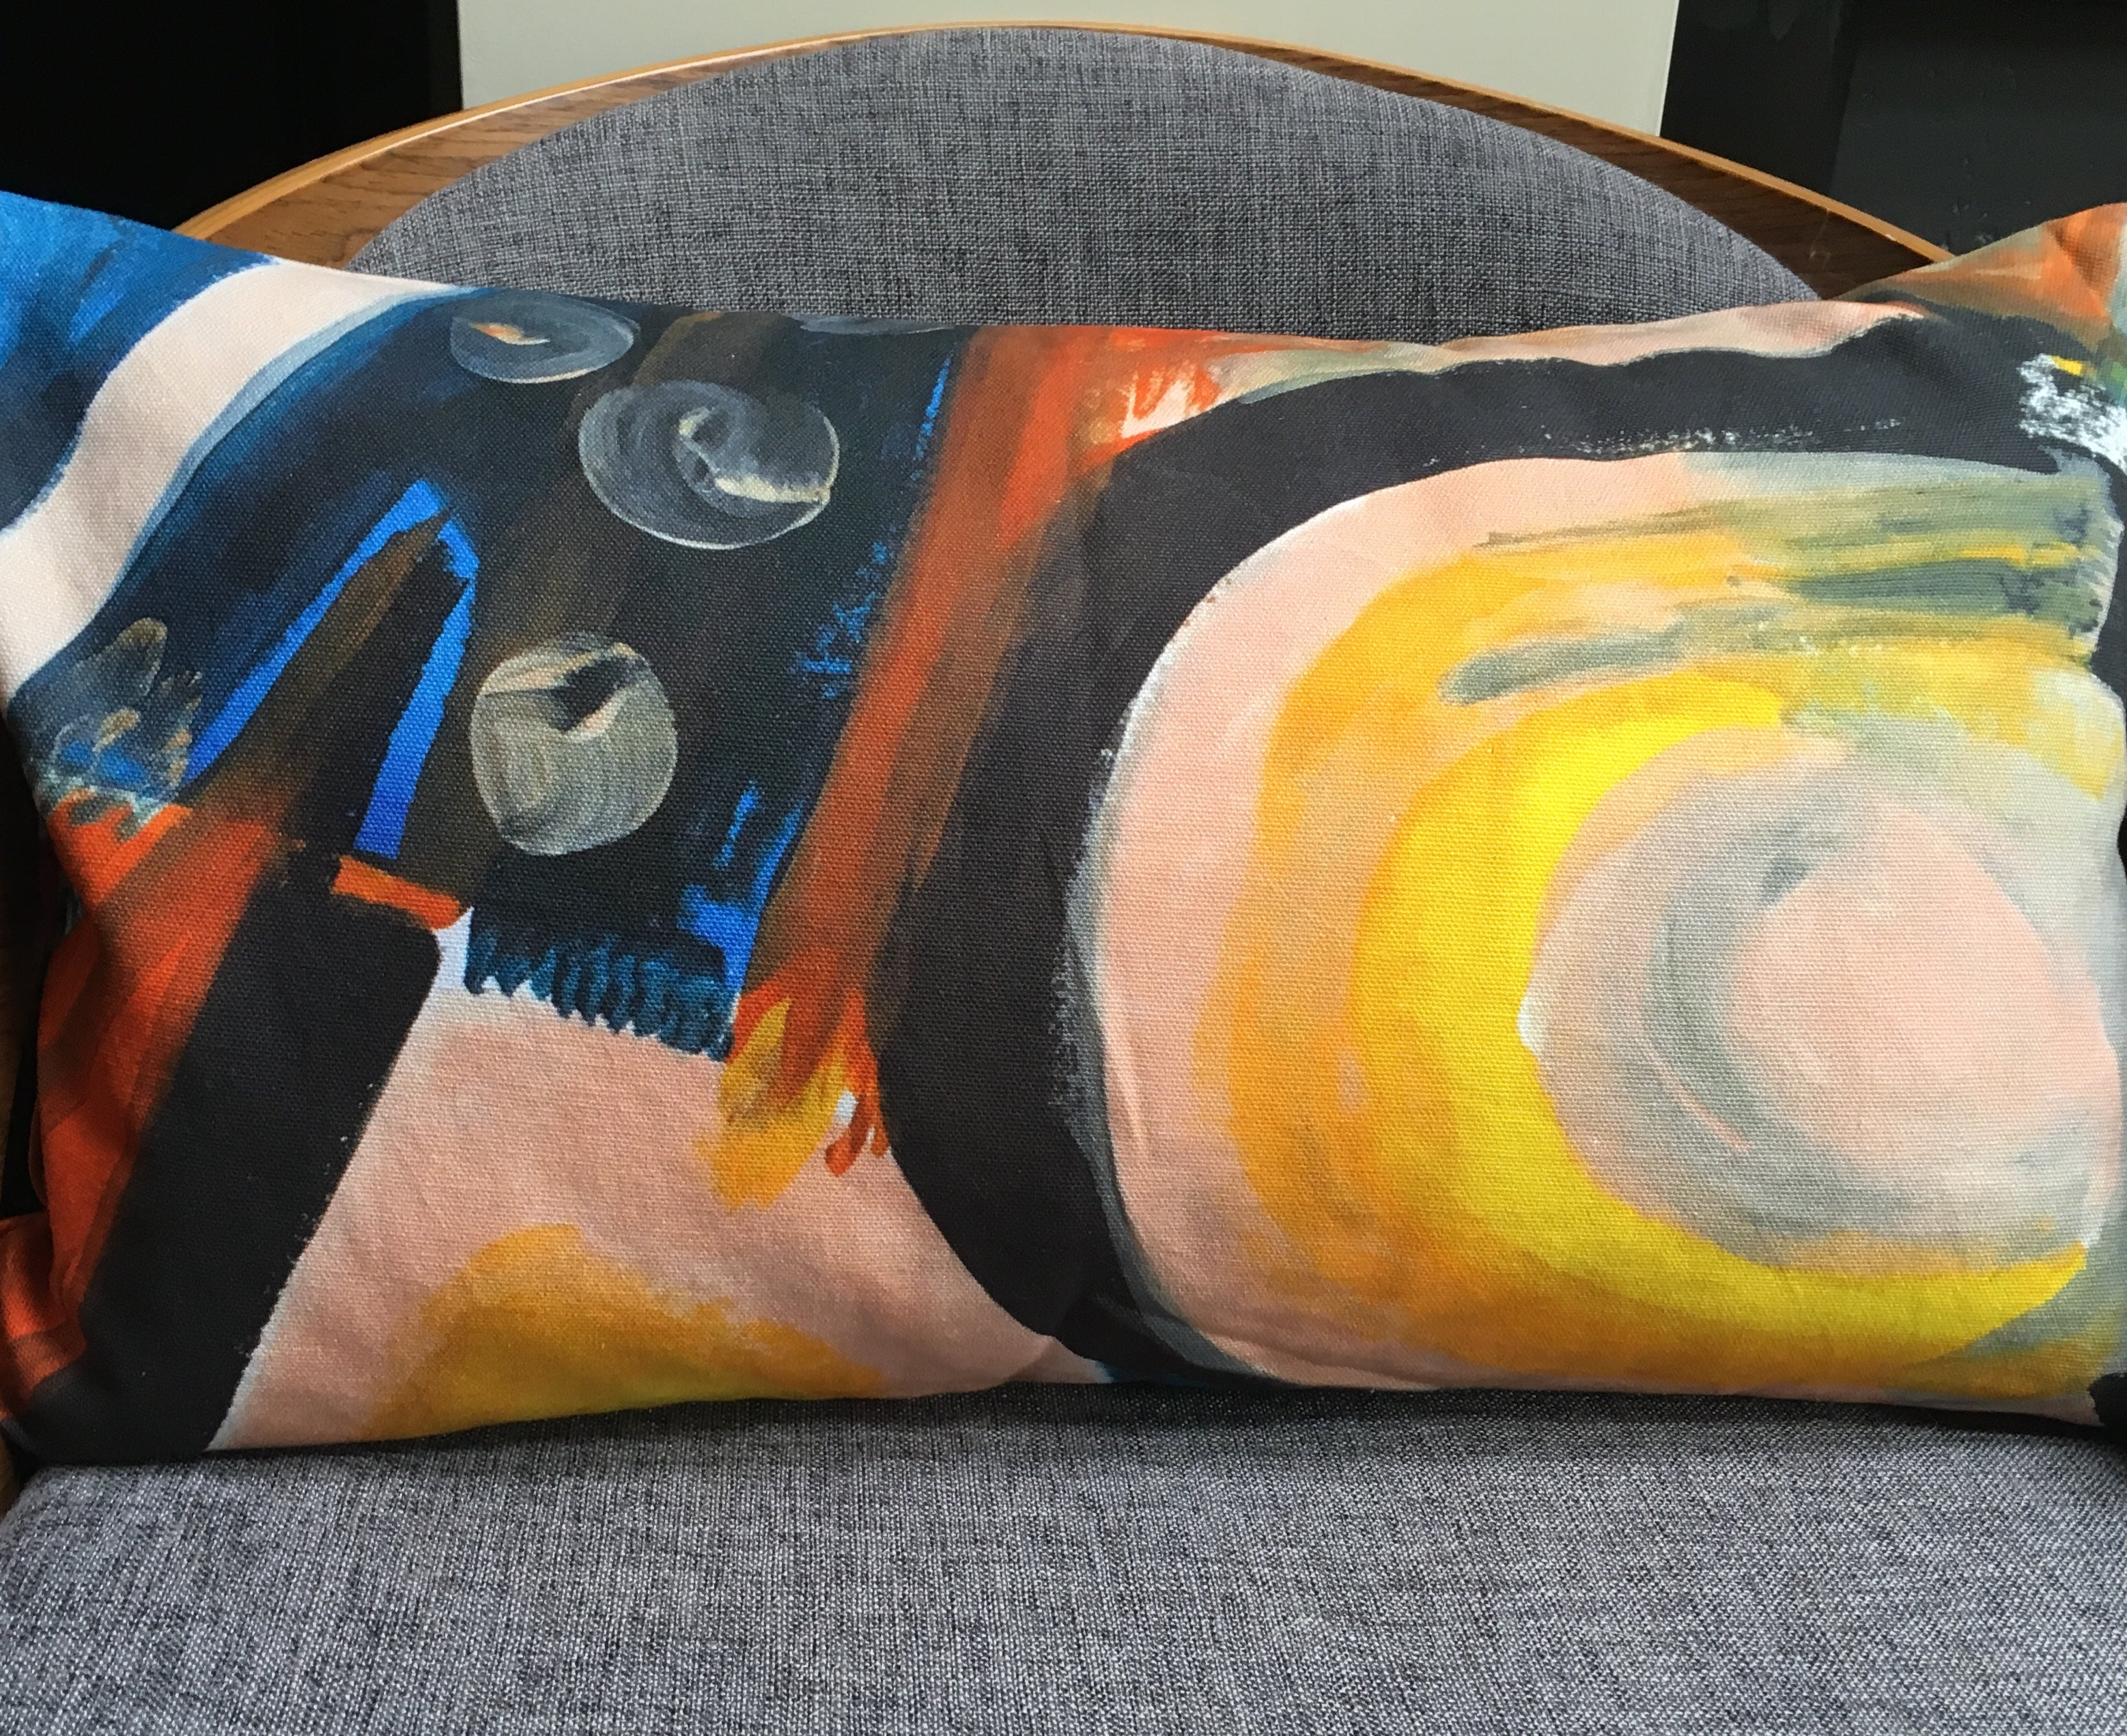 A gorgeous cushion created from artwork produced in the sharon jane studio.